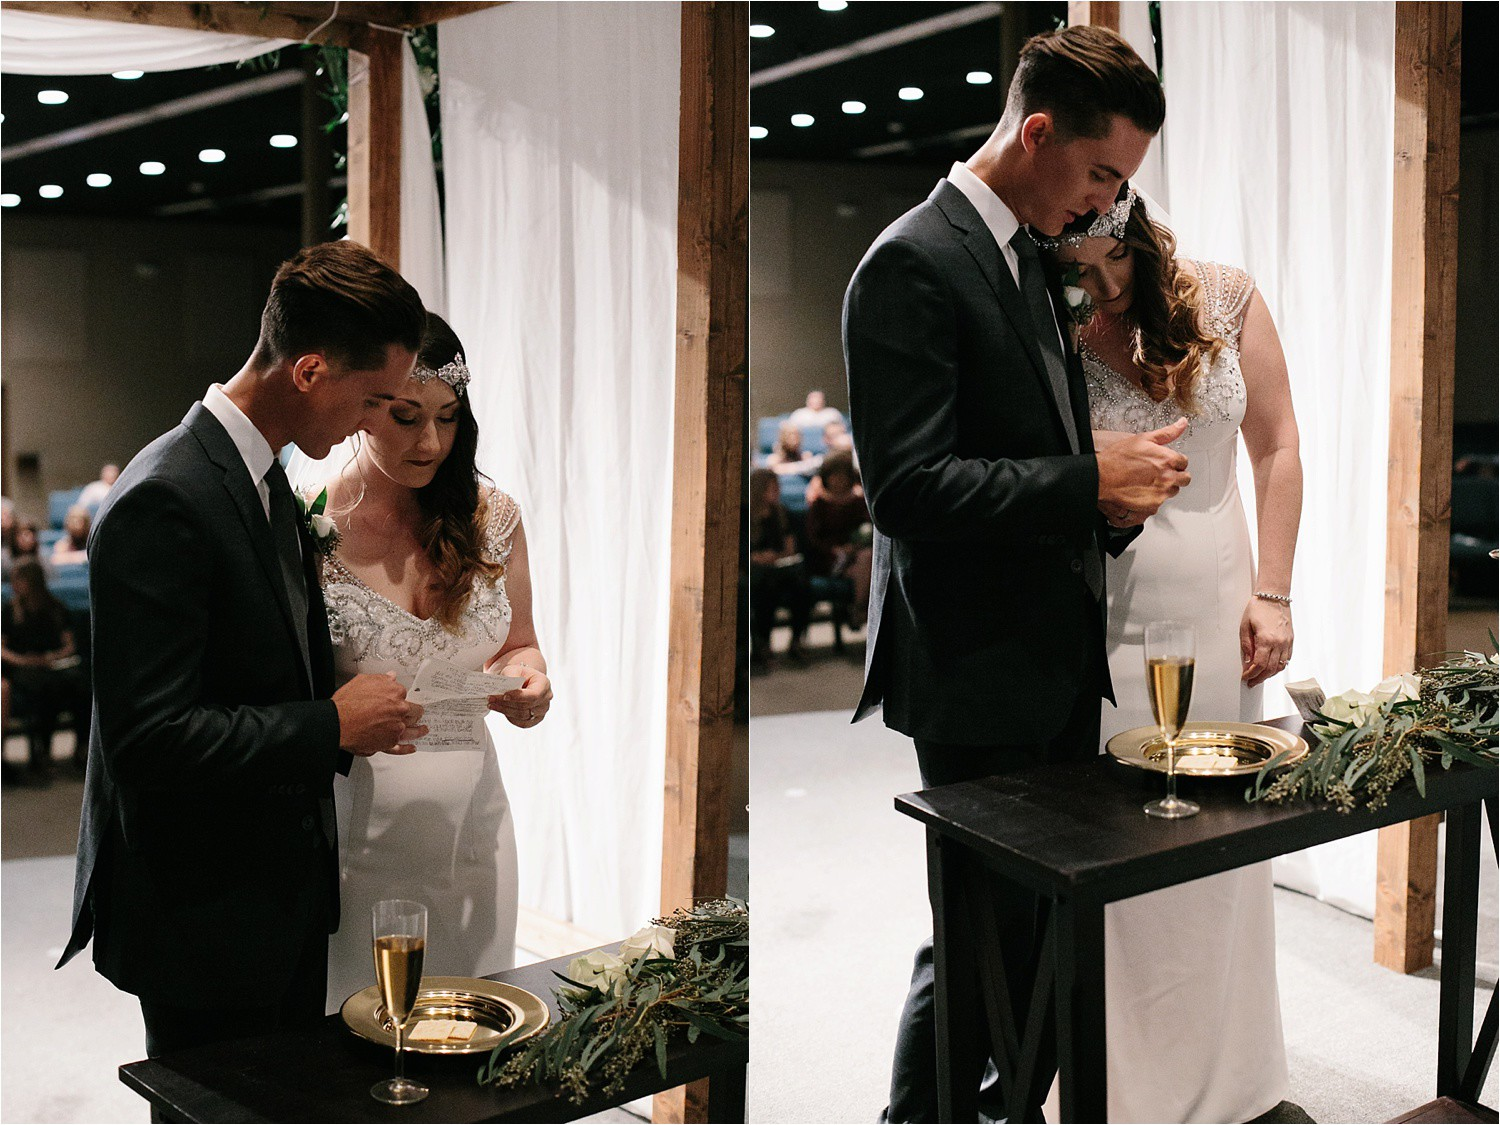 whittney-drew-__-an-intimate-wine-and-navy-wedding-in-an-industrial-venue-at-loft-123-in-paris-tx-by-north-texas-wedding-photographer-rachel-meagan-photography-_-058